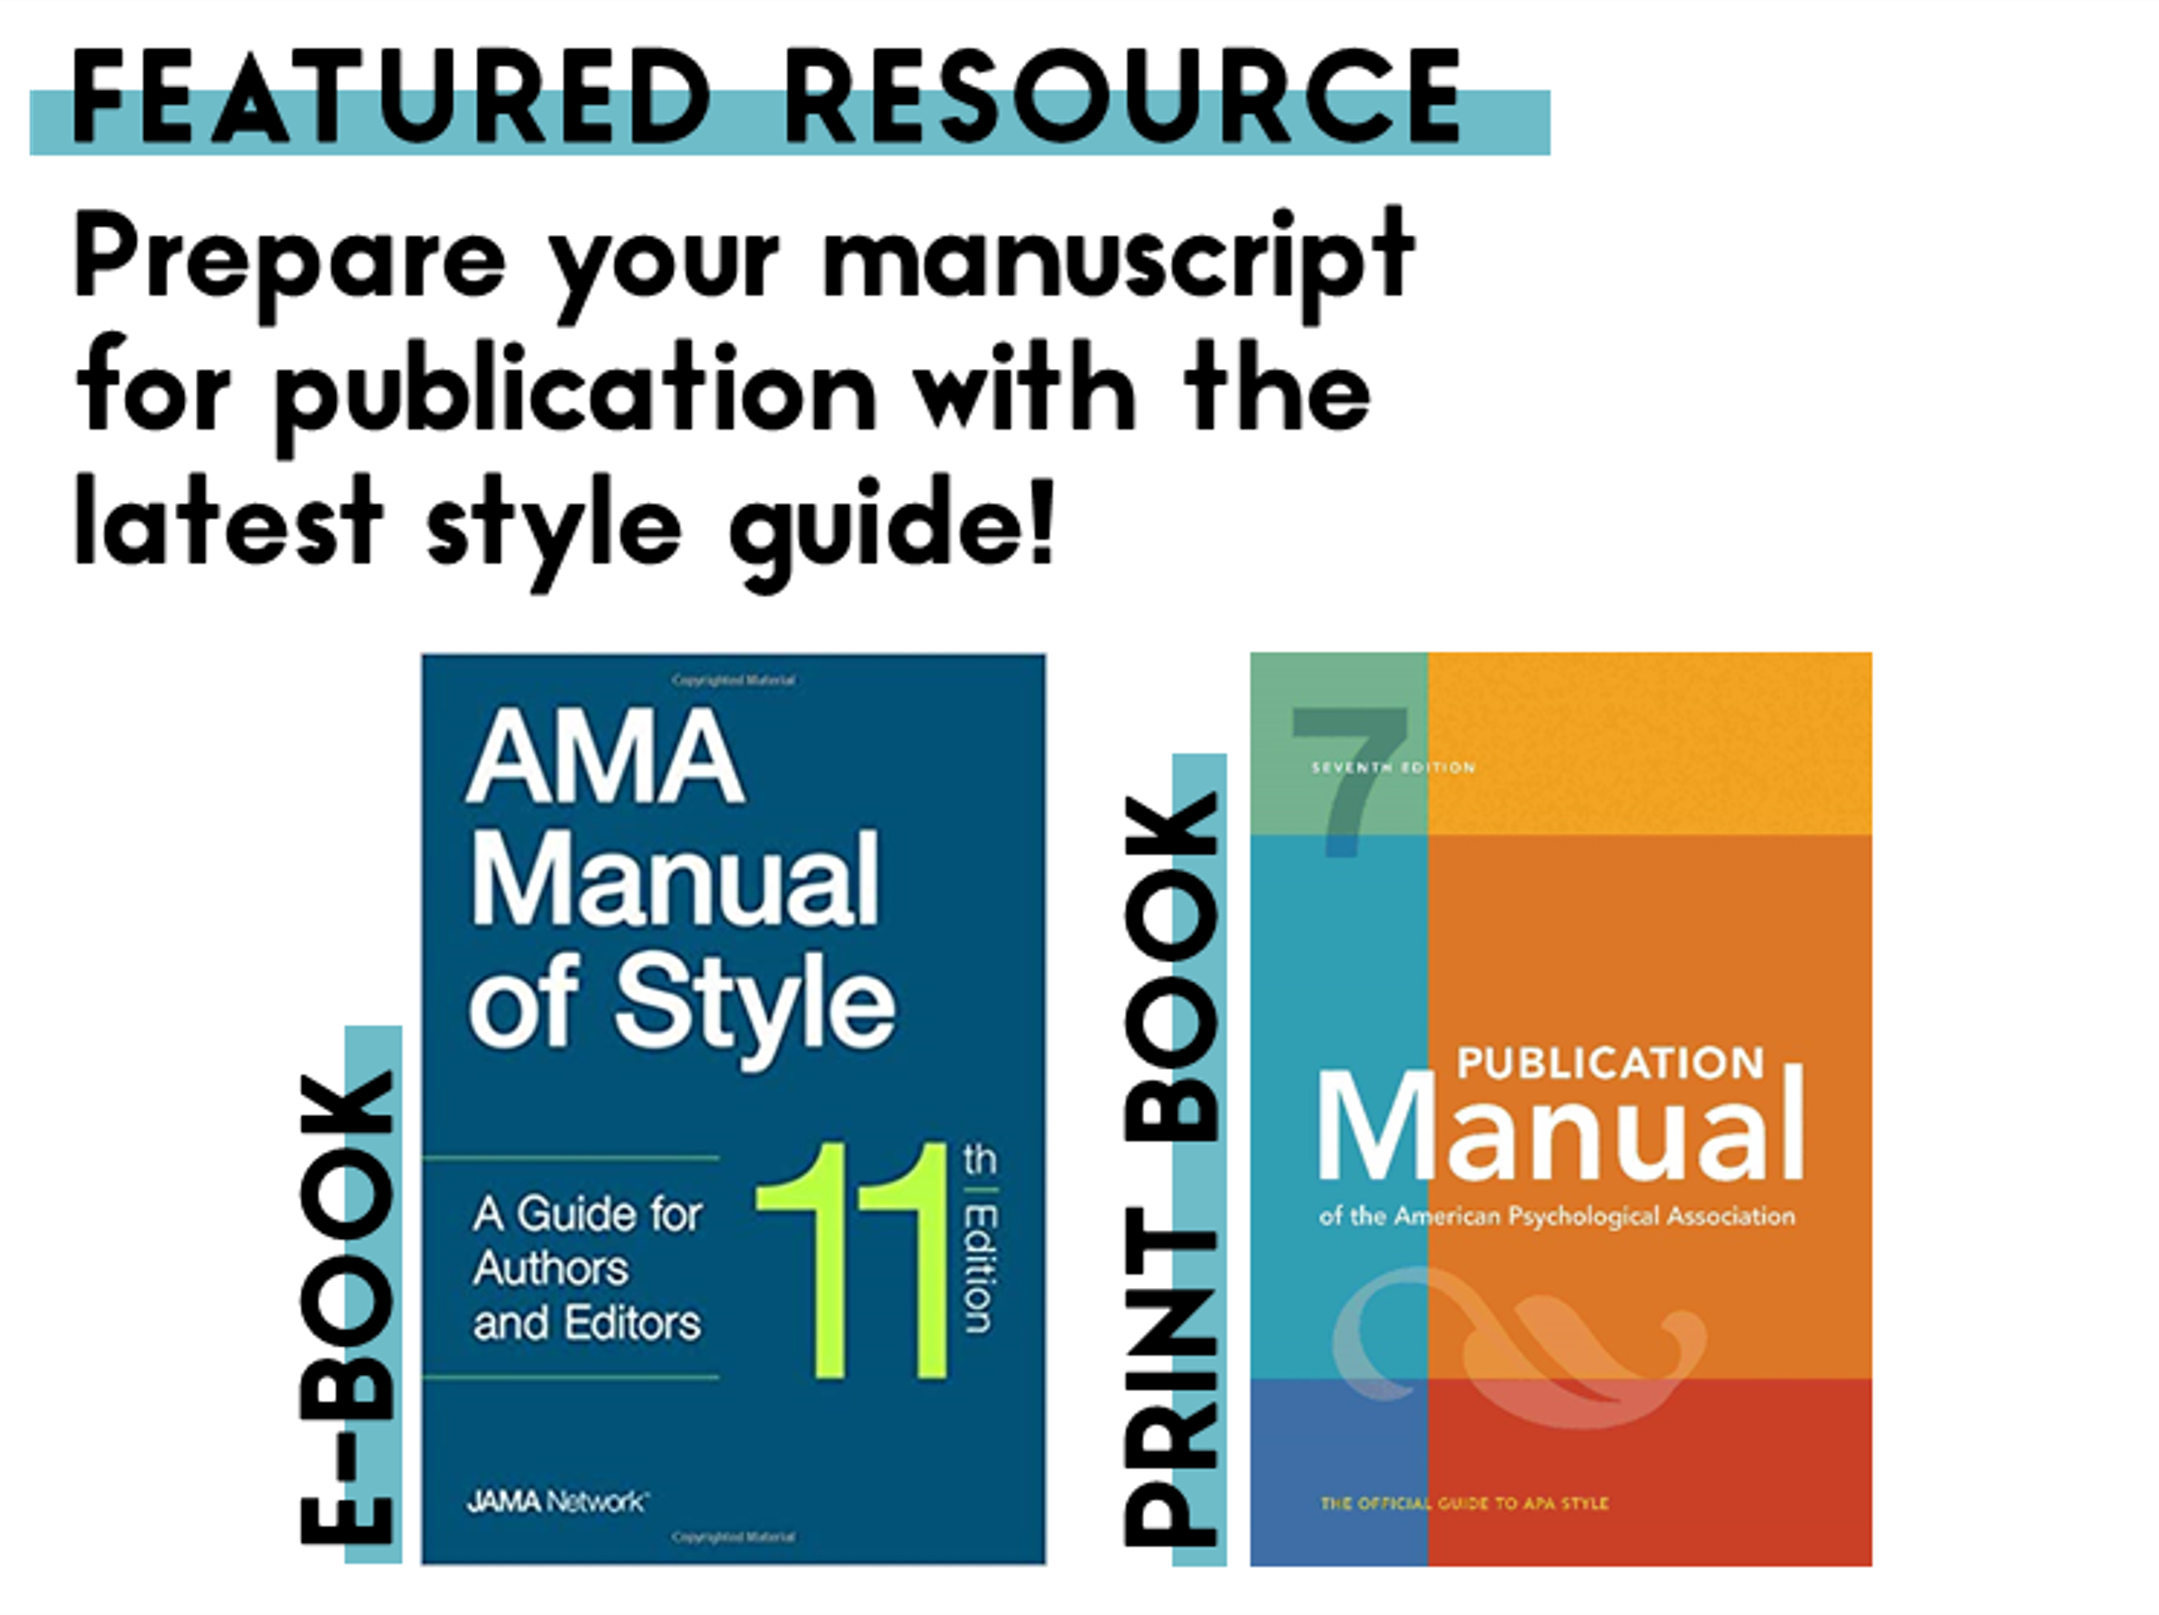 AMA Manual of Style, APA Publication Manual